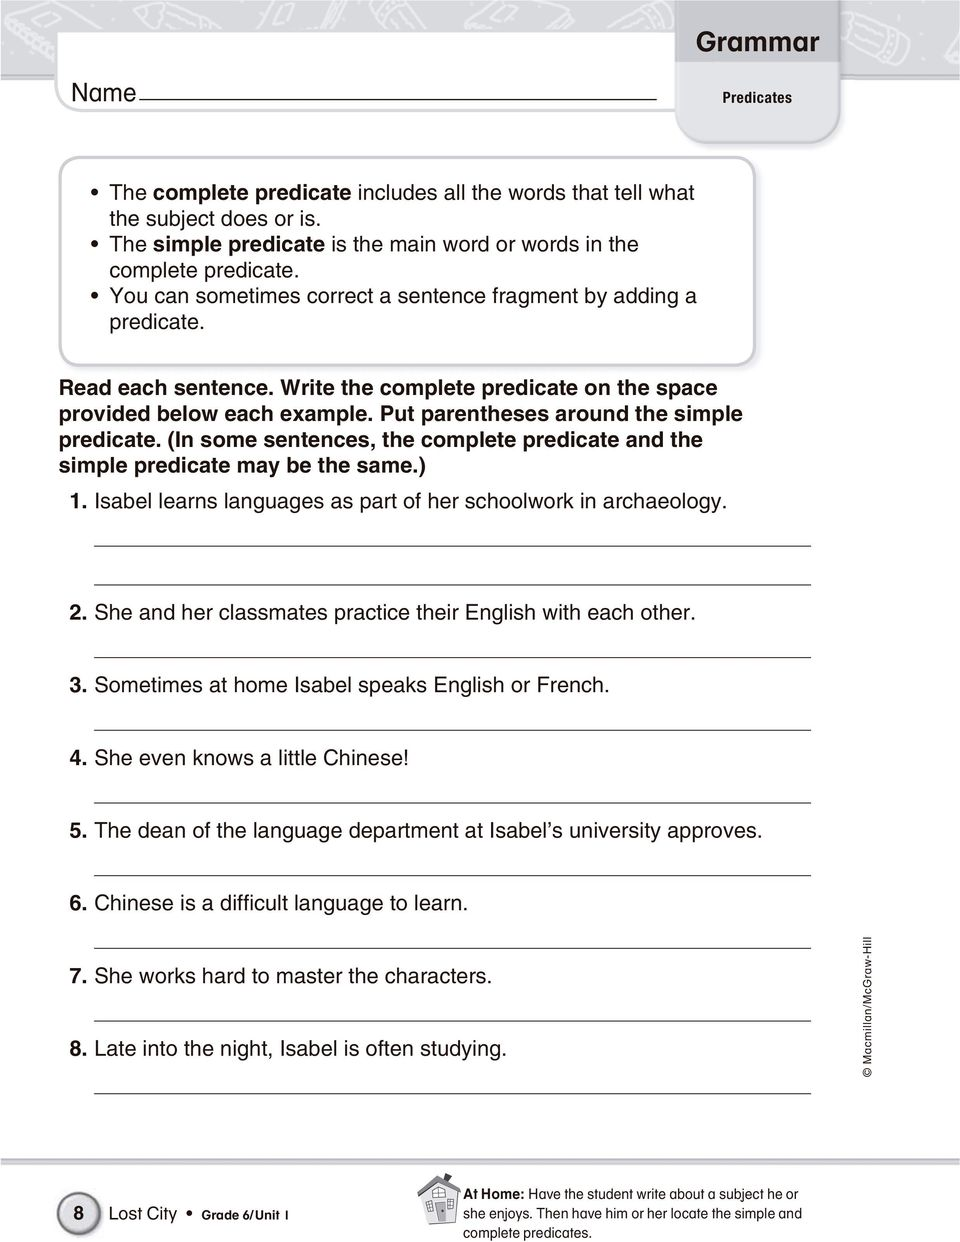 Grade 6 grammar practice book pdf put parentheses around the simple predicate in some sentences the complete predicate and fandeluxe Images